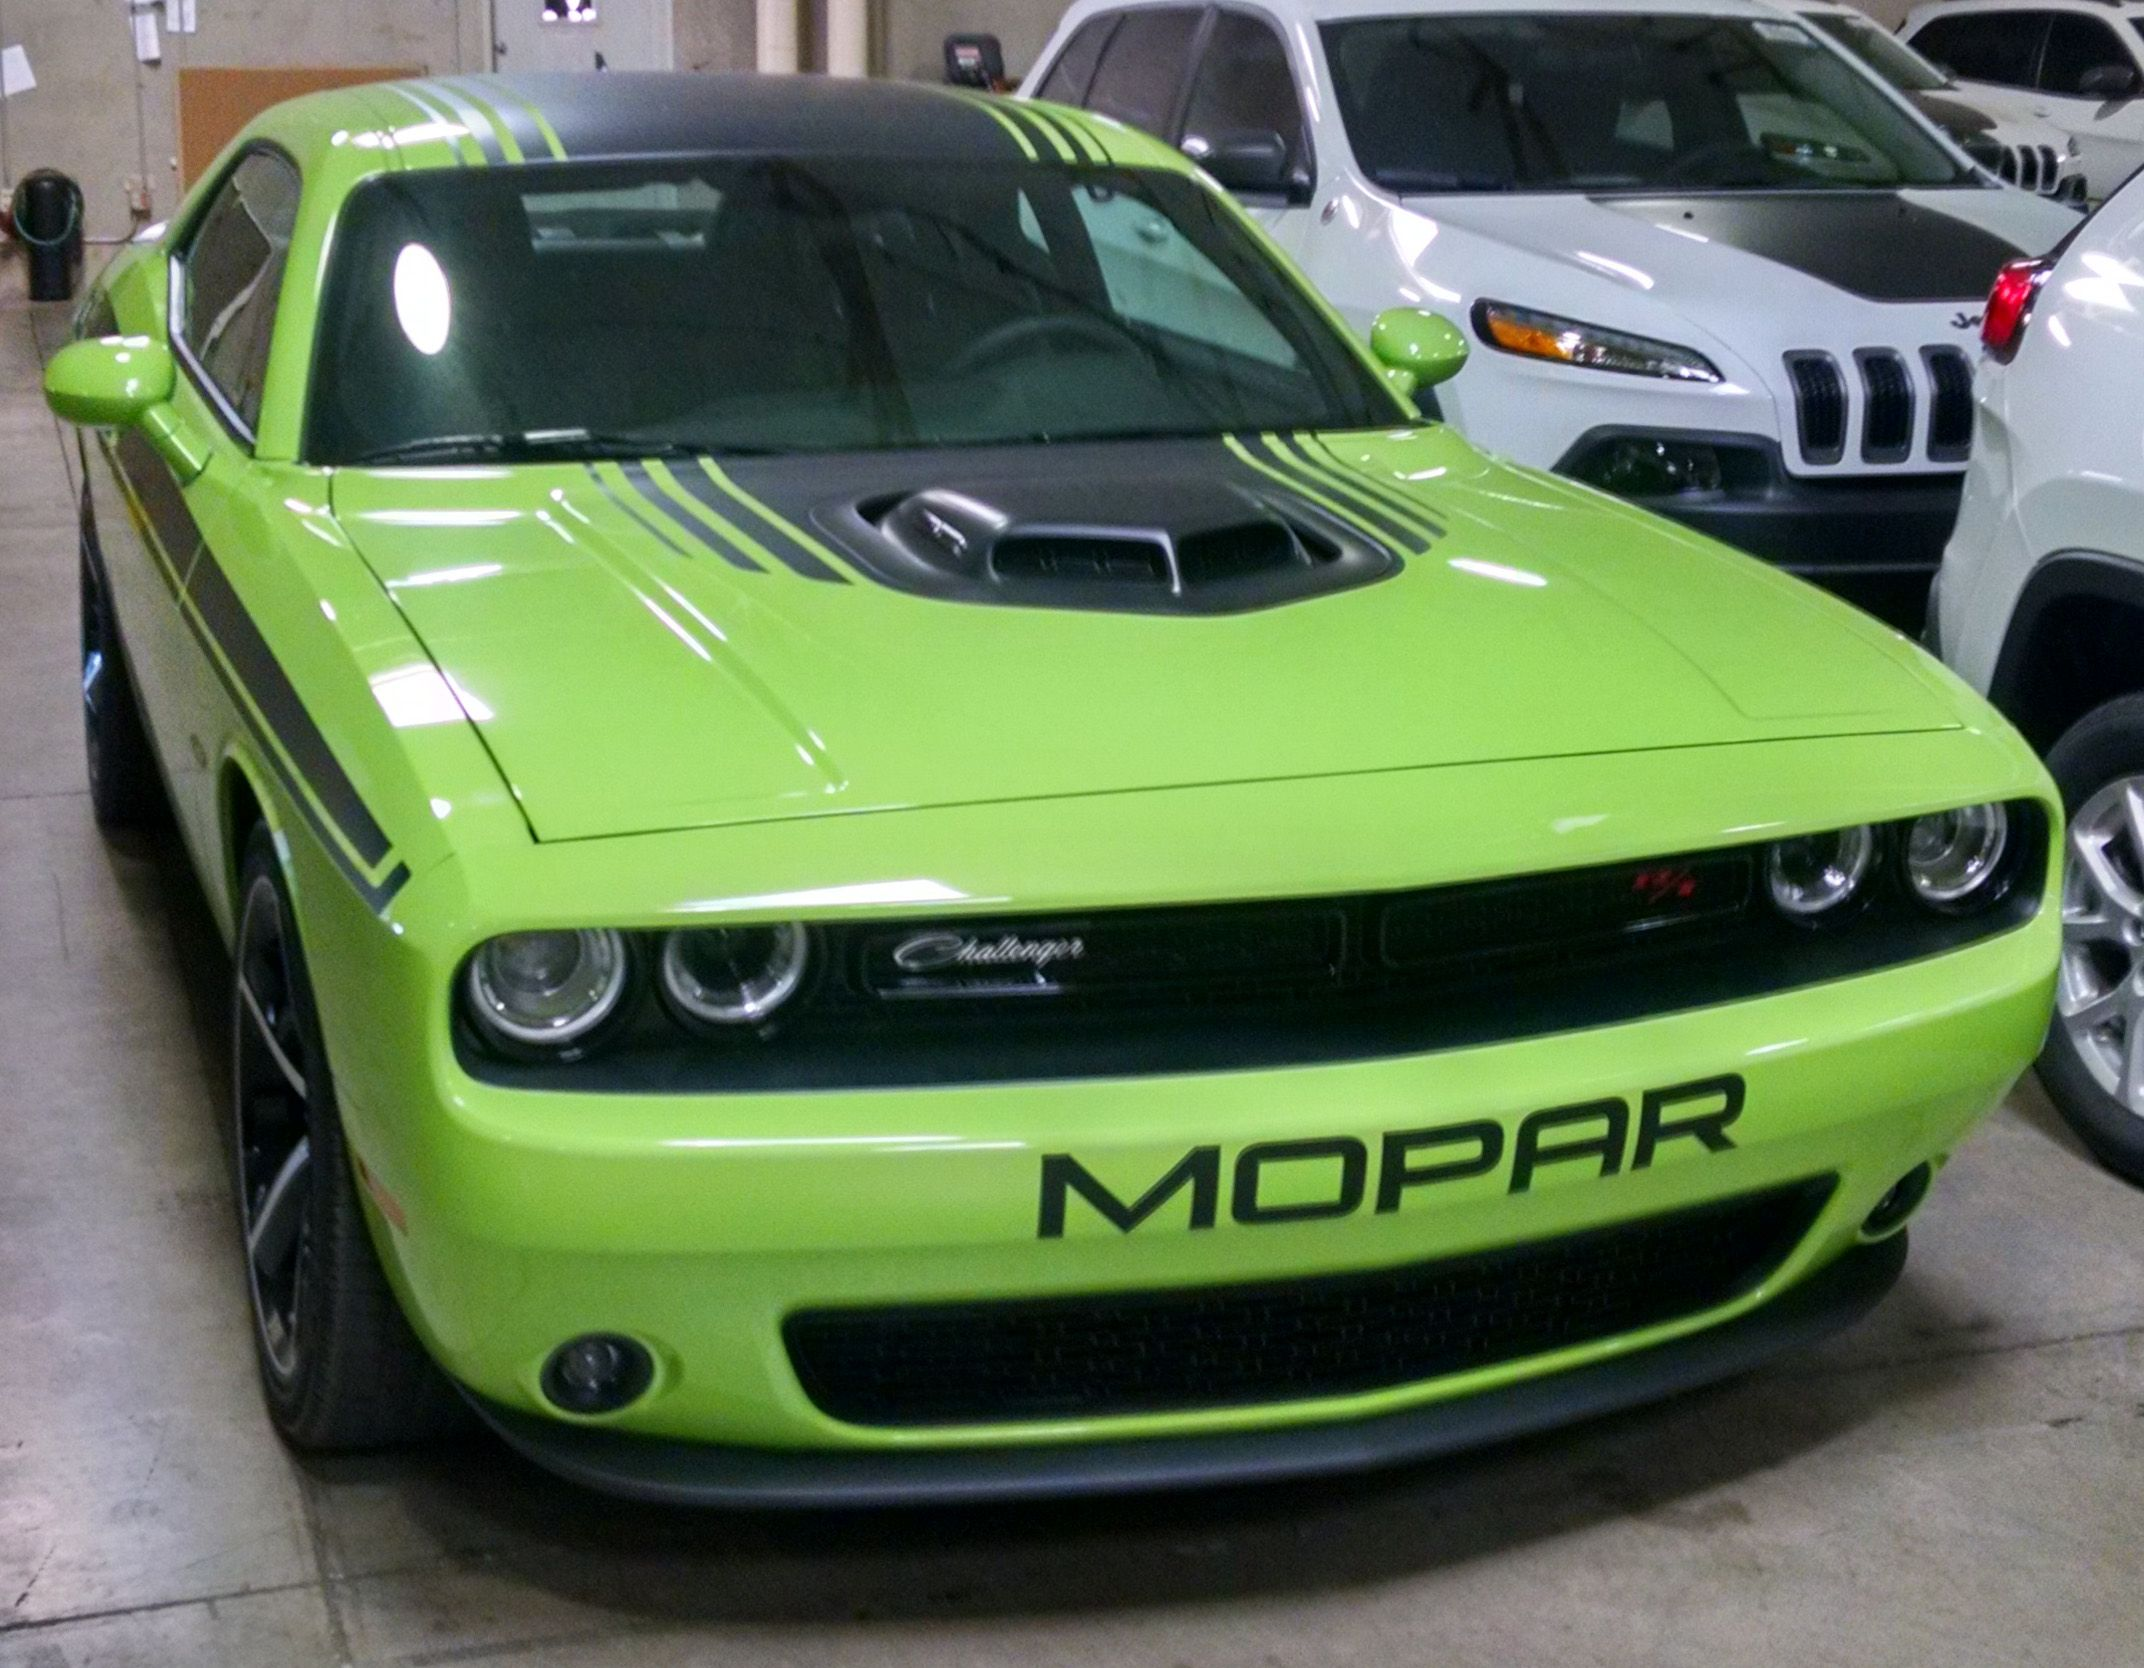 2015 2016 2017 2018 2019 2020 2021 Dodge Challenger Front Bumper Text Vinyl Graphics Stripes Decals Kit Fits Sxt Sxt Plus Gt Awd R T R T Plus R T Dodge Challenger Dodge Challenger